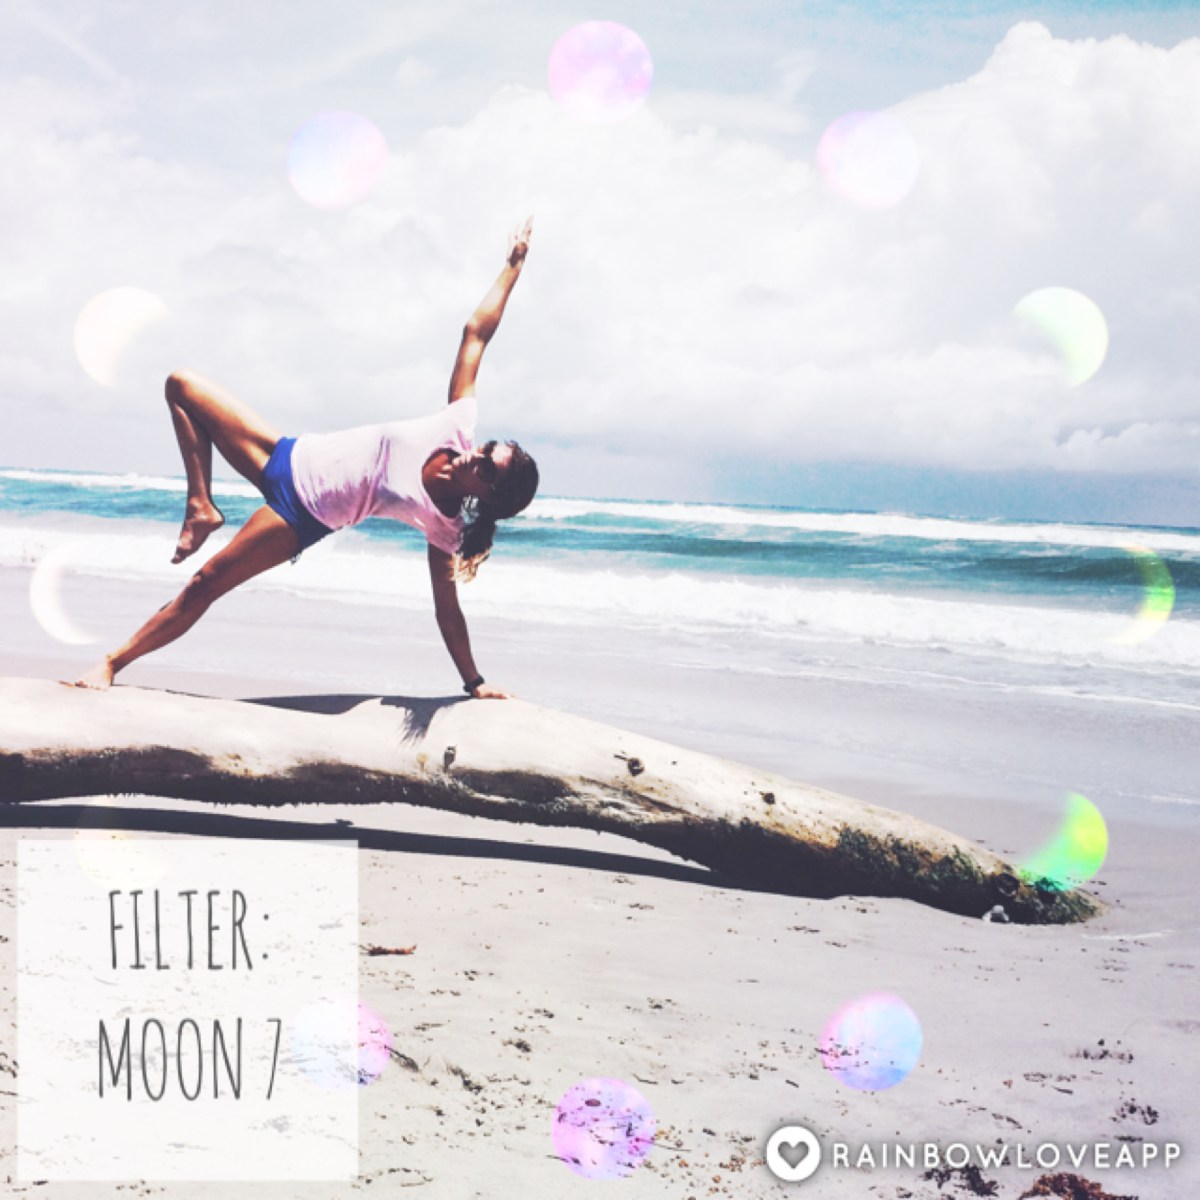 rainbow-love-app-moon-phase-photo-filter-filters-for-yoga-photos-2